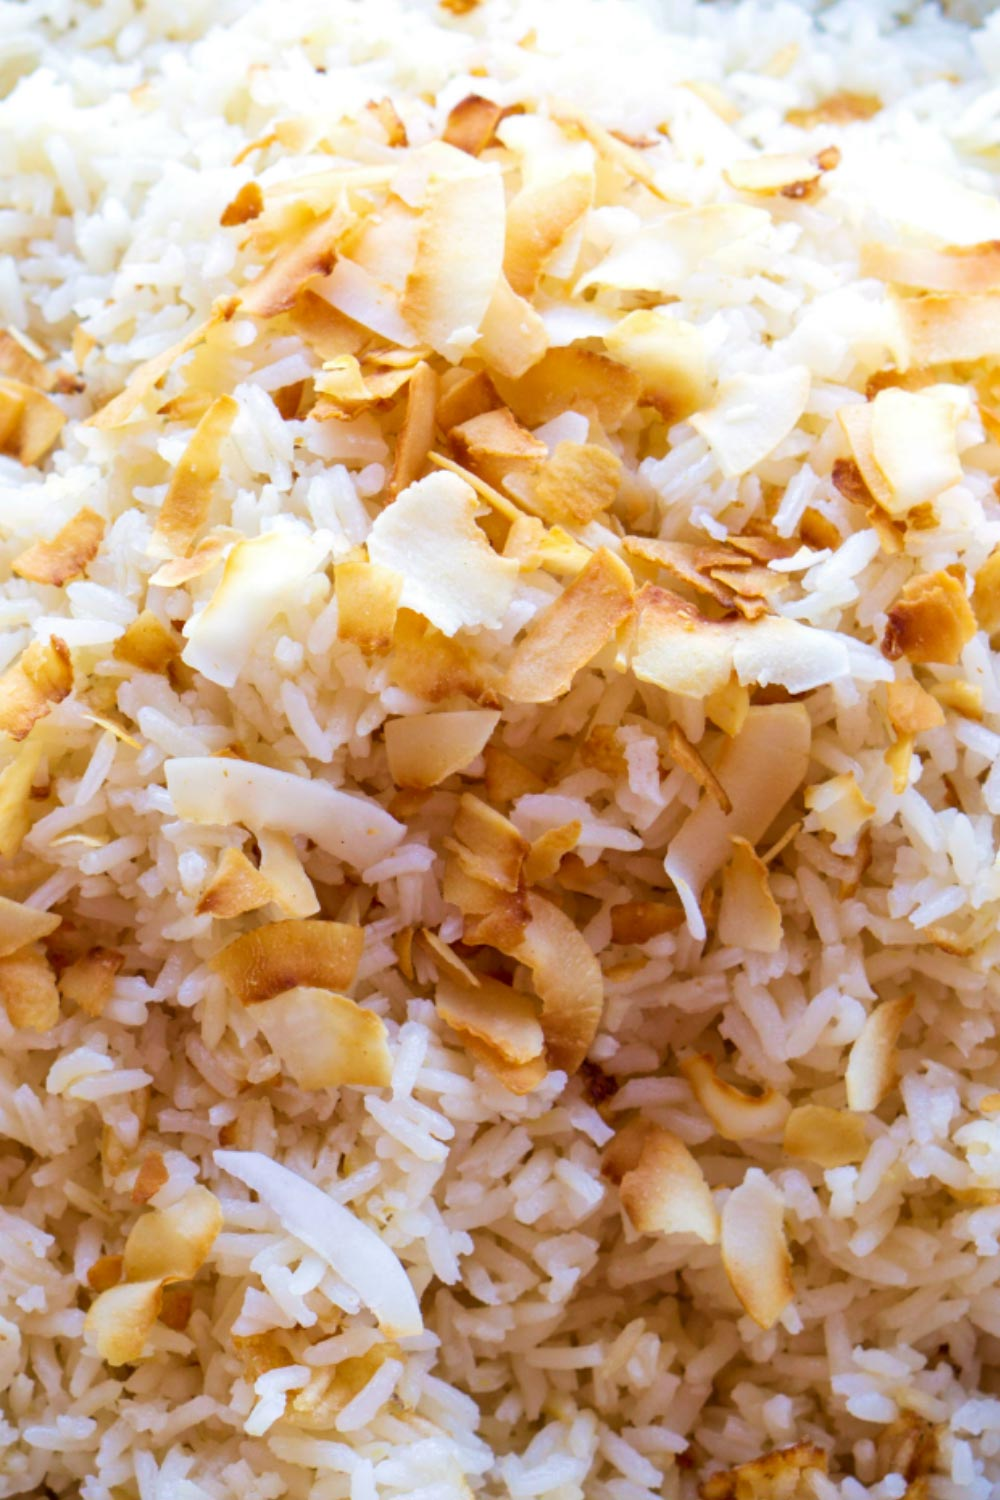 My favorite Coconut Rice recipe! It comes out perfectly every time!